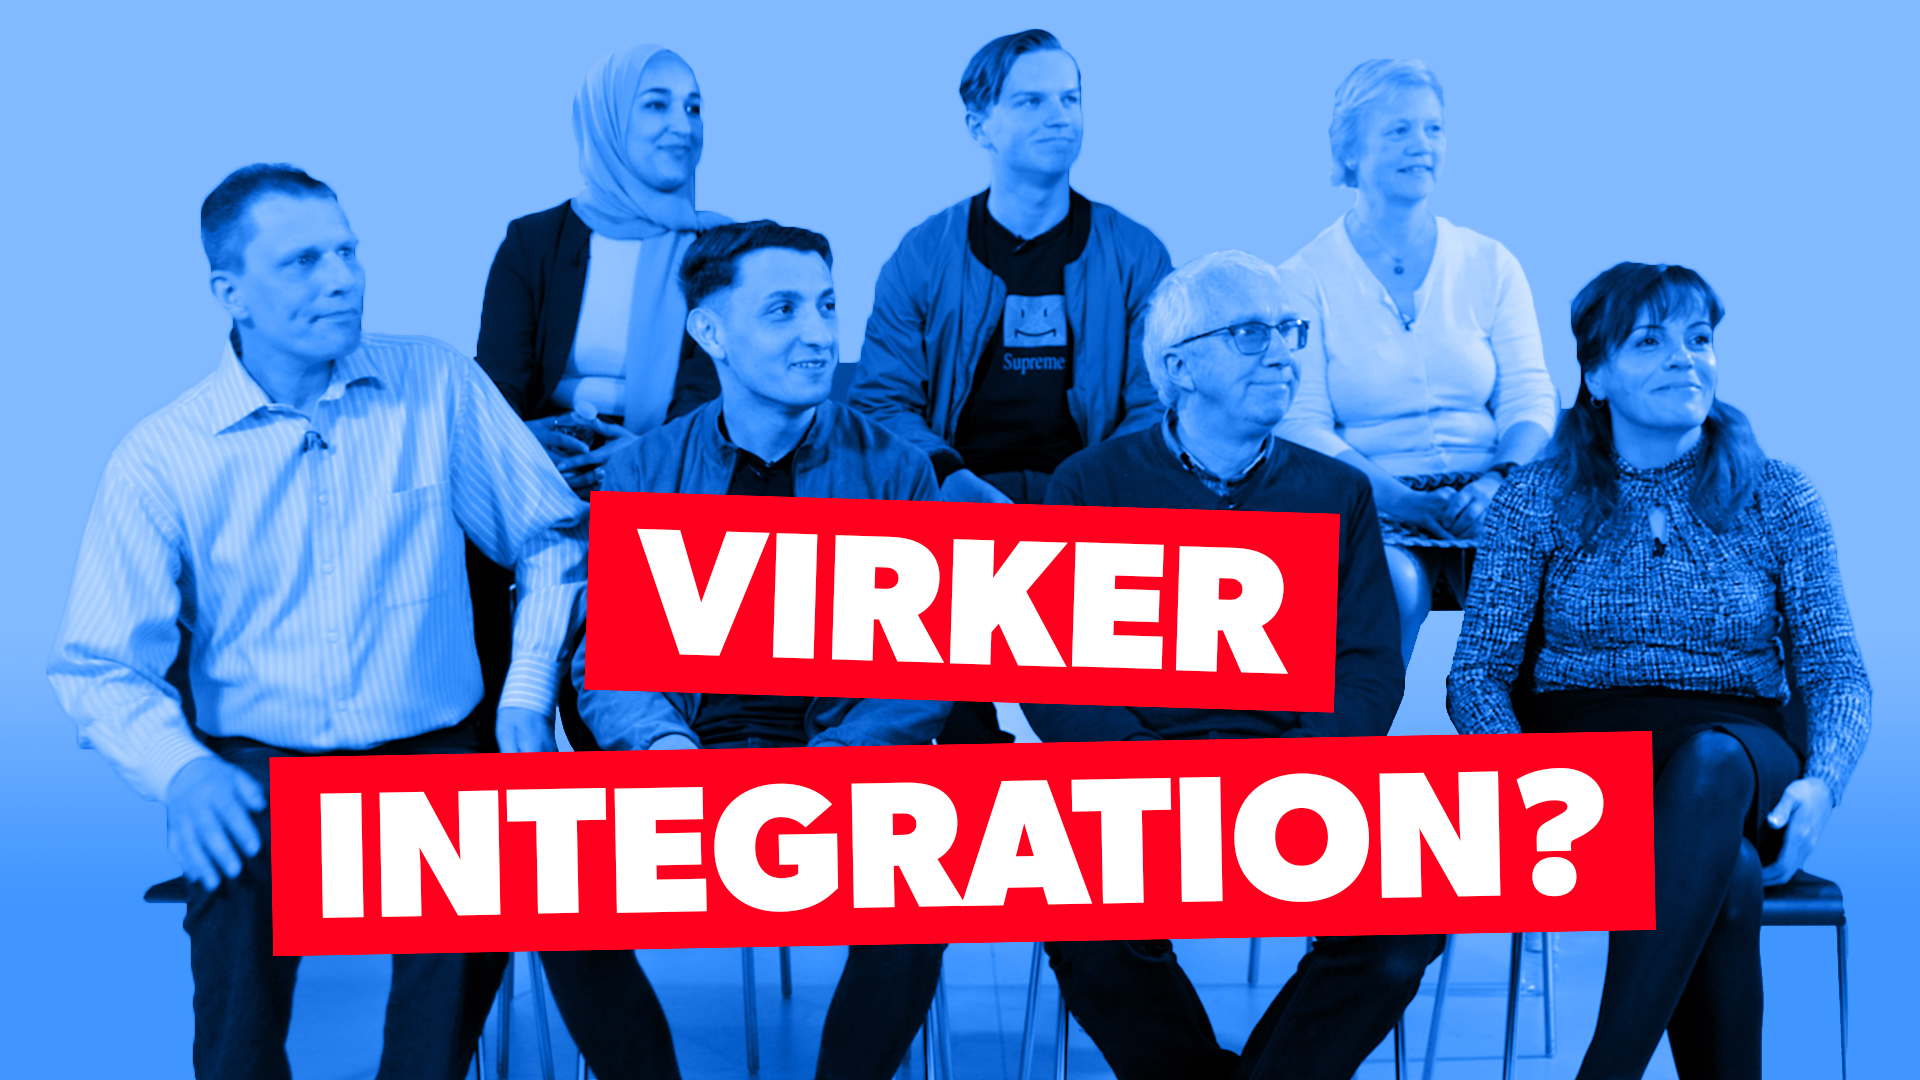 virker_integration_thumb_01.jpg